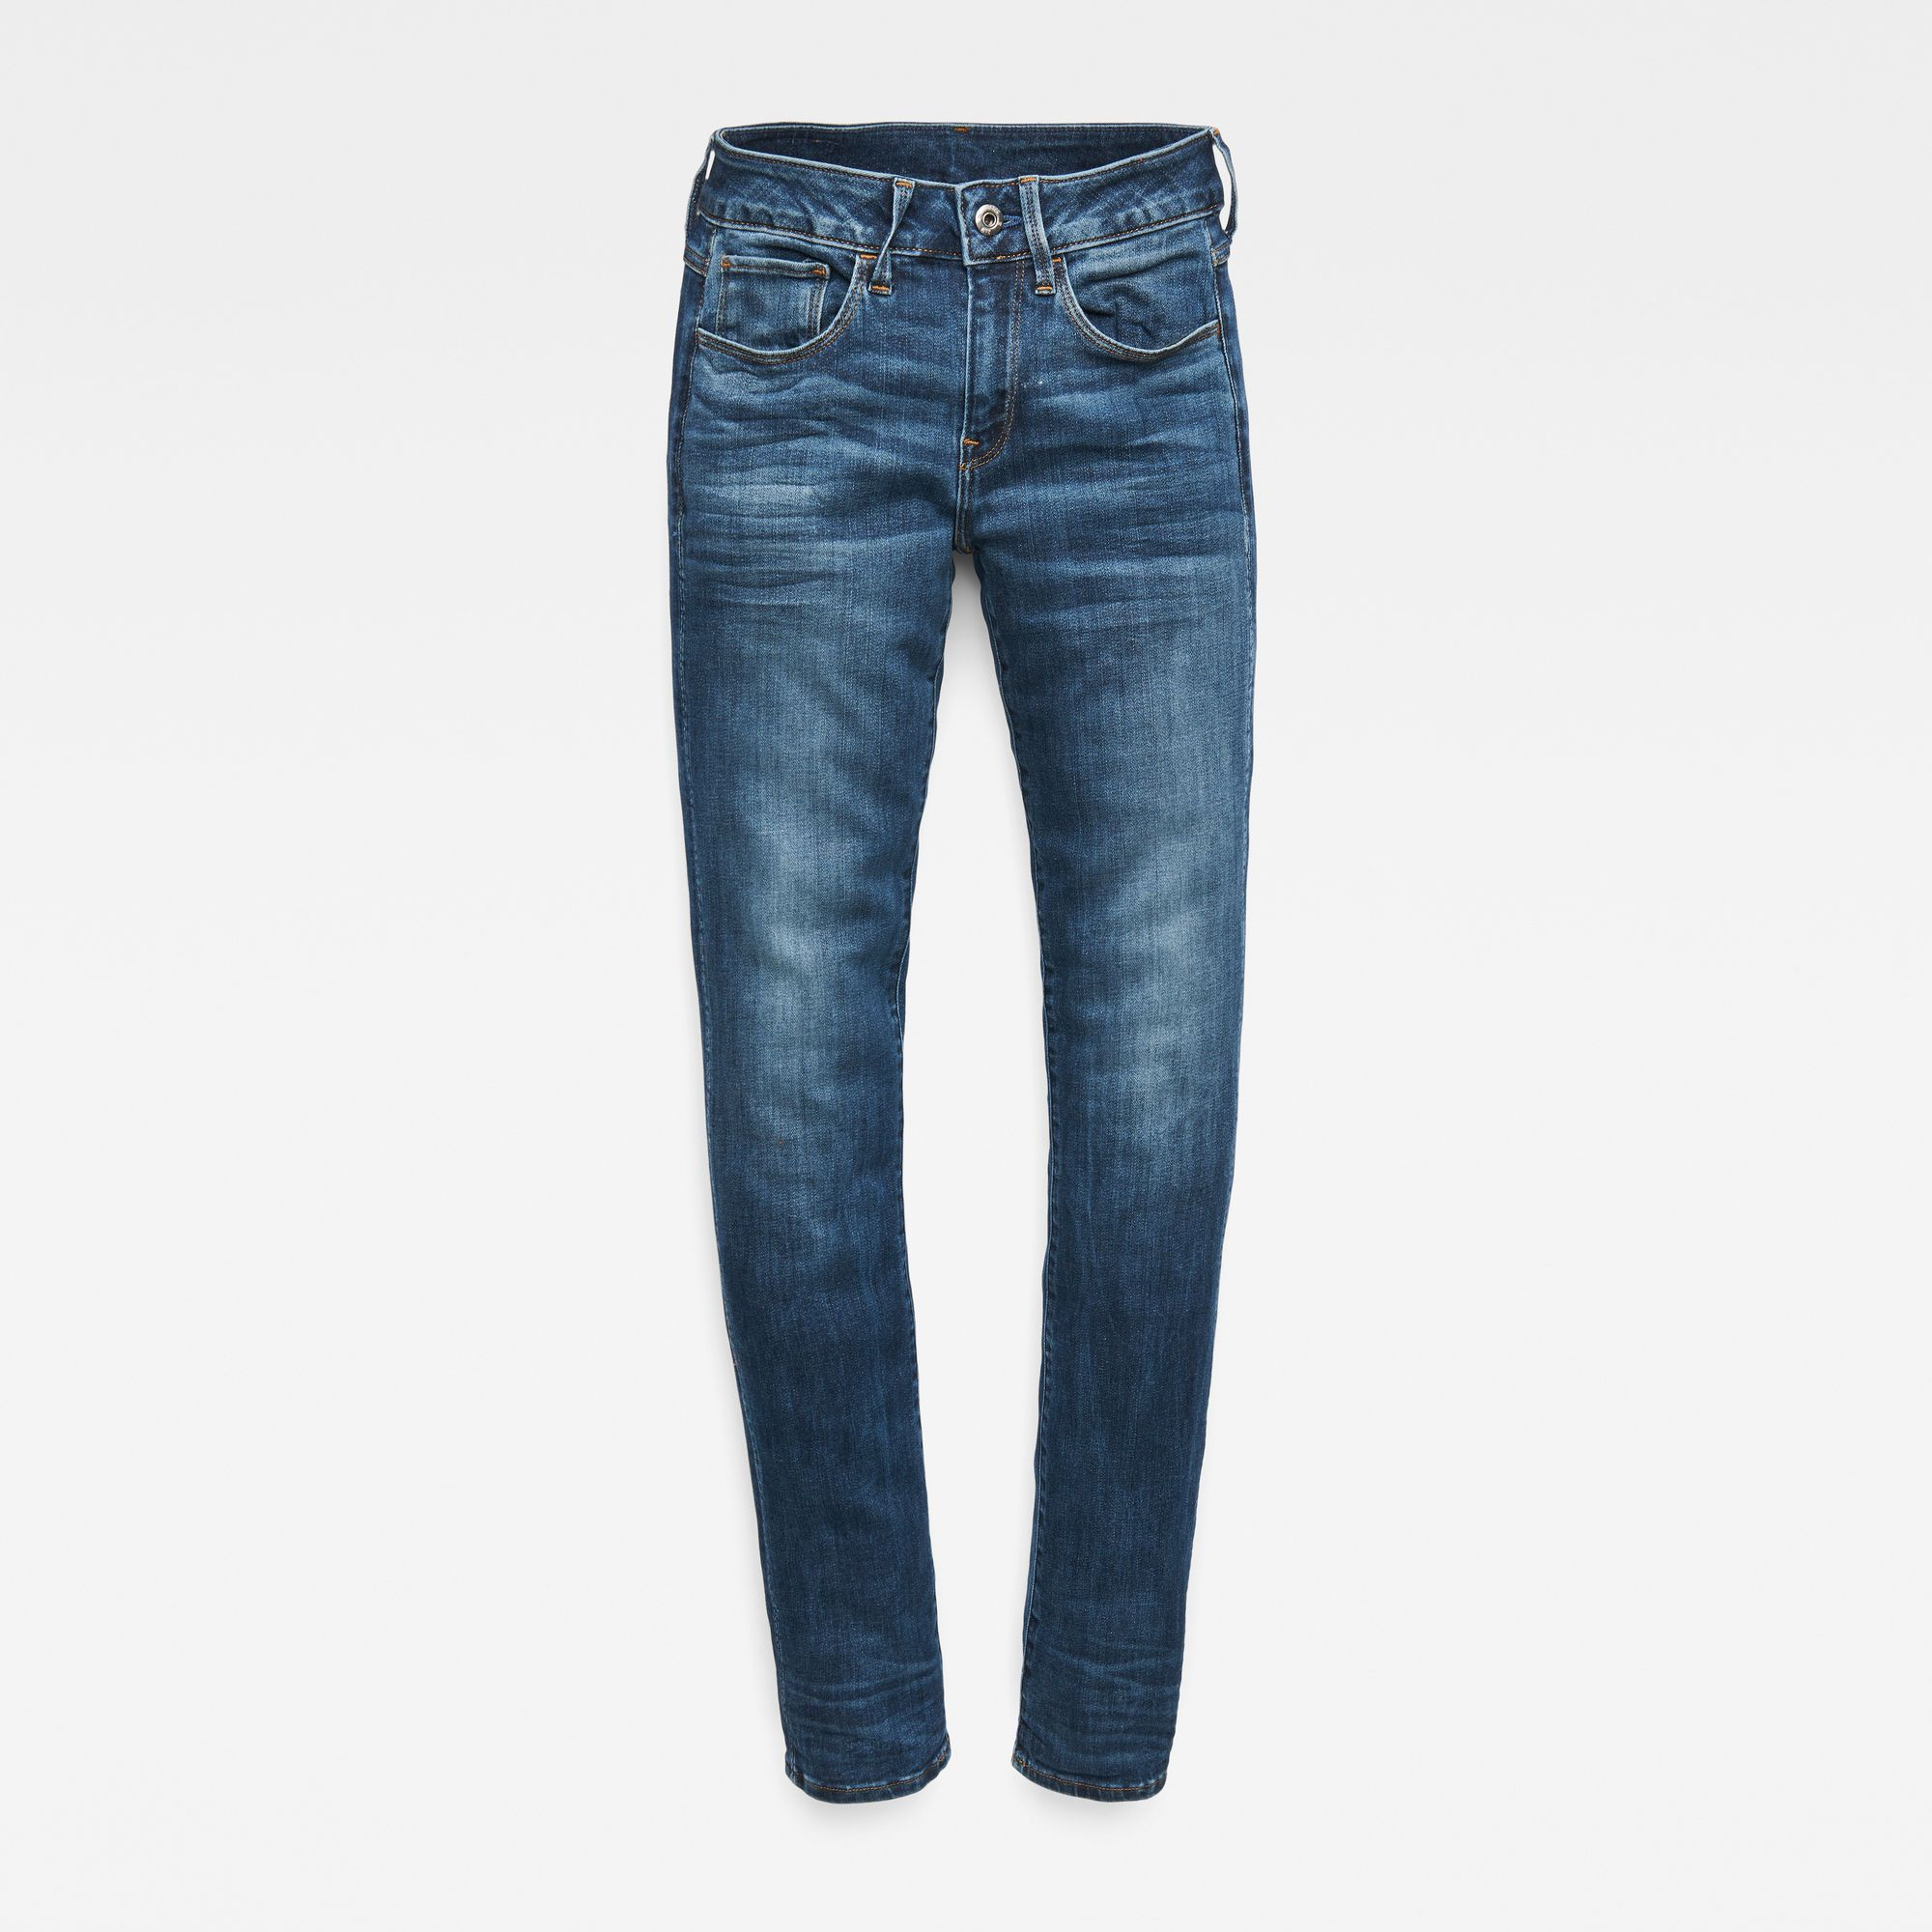 G-Star RAW 3301 Deconstructed Mid Straight Jeans